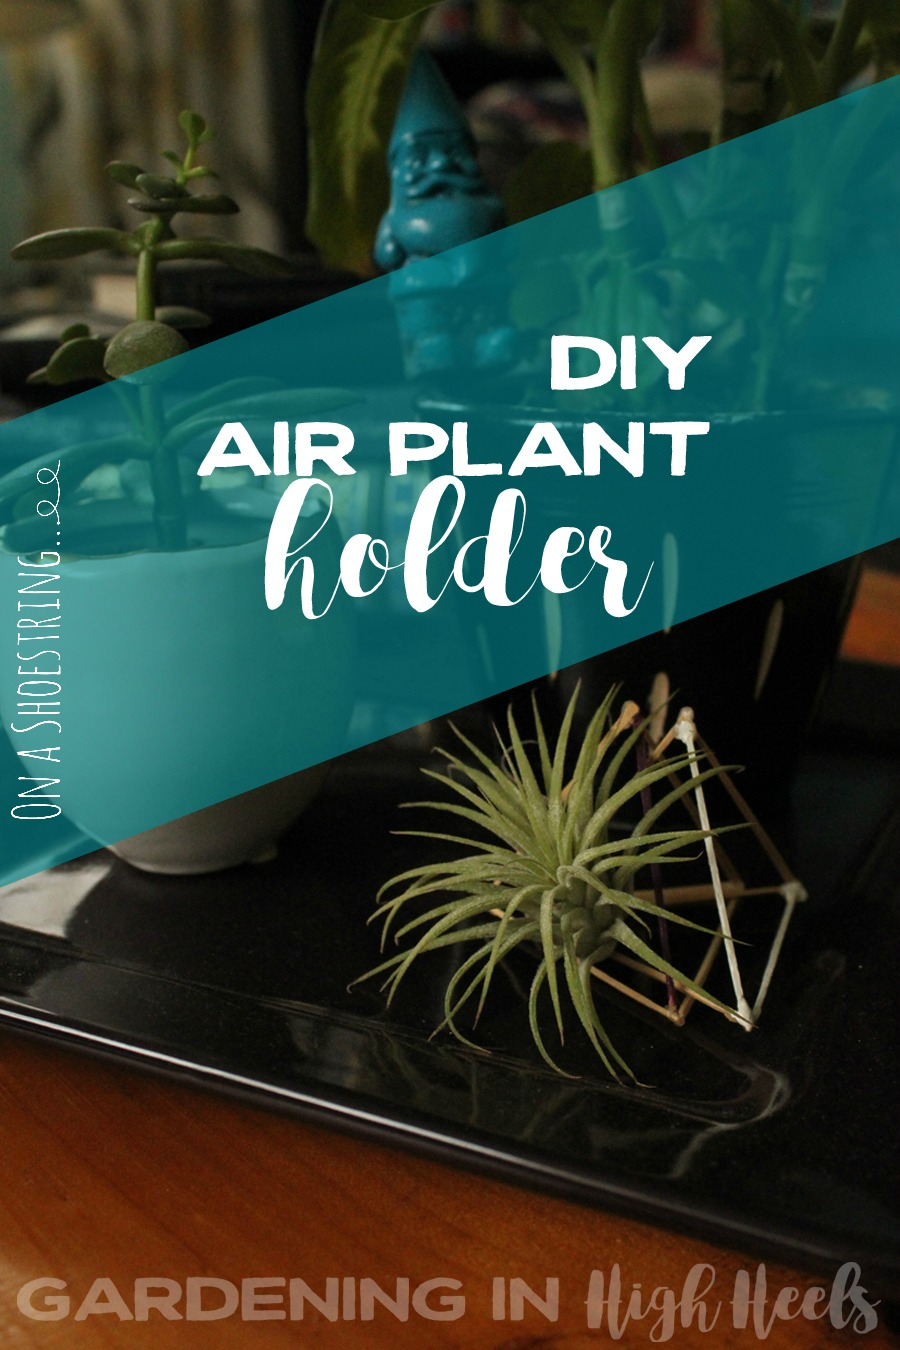 This air plant holder is so easy to make! It's just toothpicks, glue, and paint. It's an awesome, quick DIY!